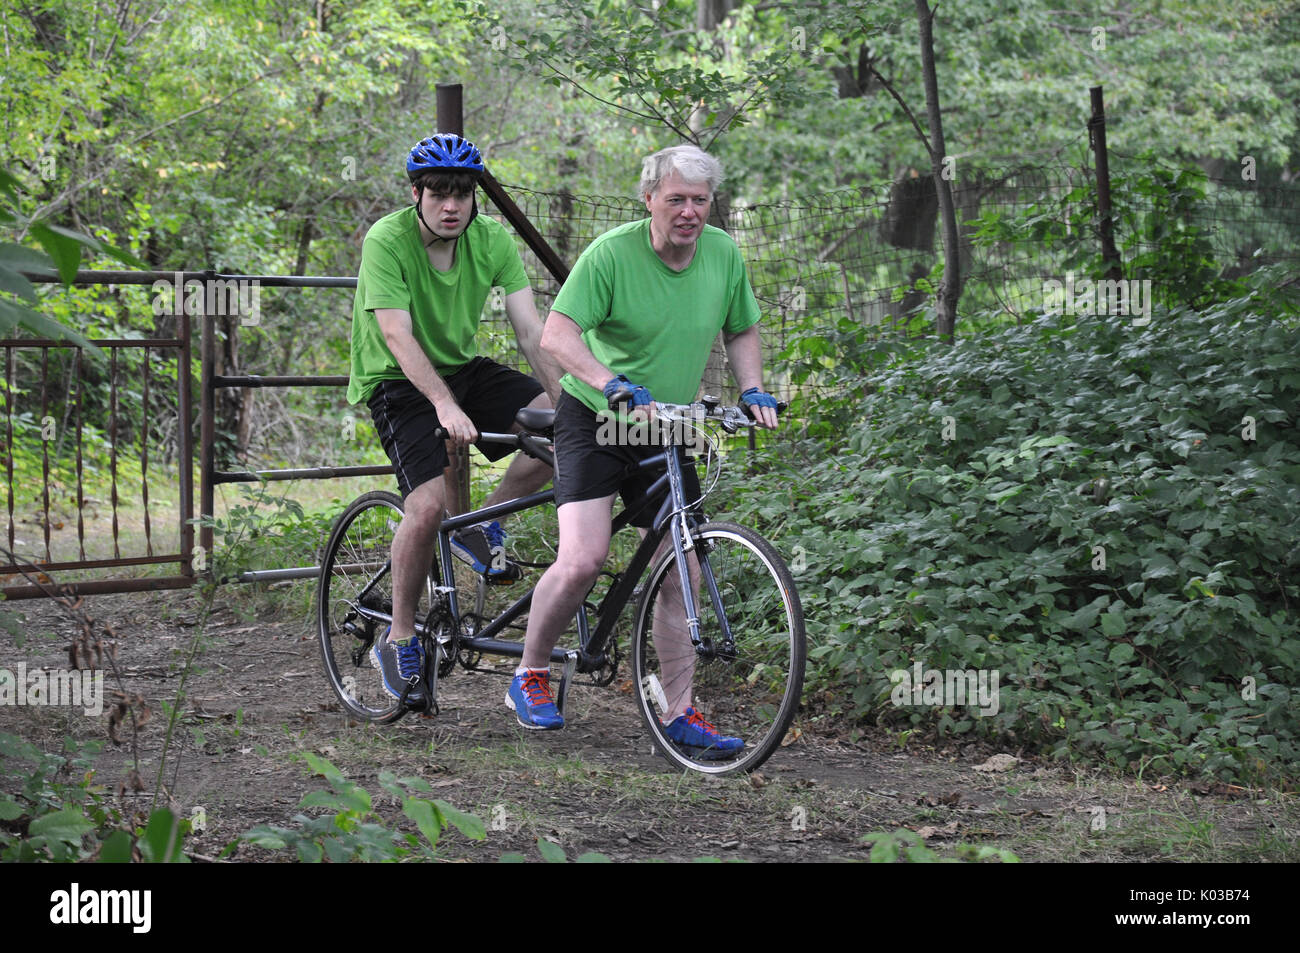 Father and Son on Tandem Mountain Hybrid Mountain Bike Cycling on the Western Reserve Greenway Trail in Ashtabula County, Ohio - Stock Image